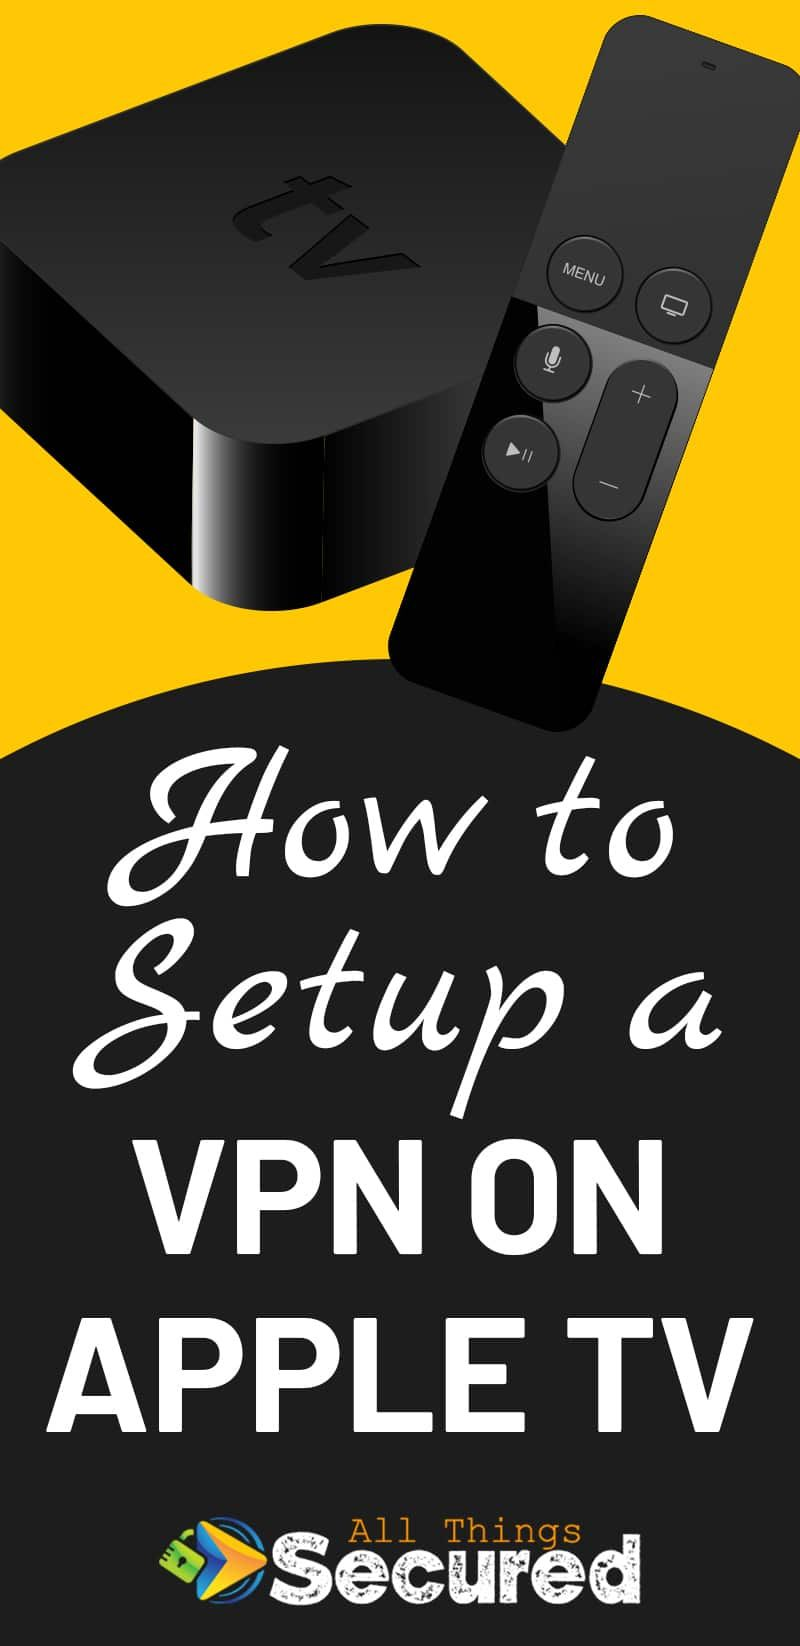 159ffdedca6bba6ab992b214f4f461d3 - Why Won T Netflix Work With Vpn